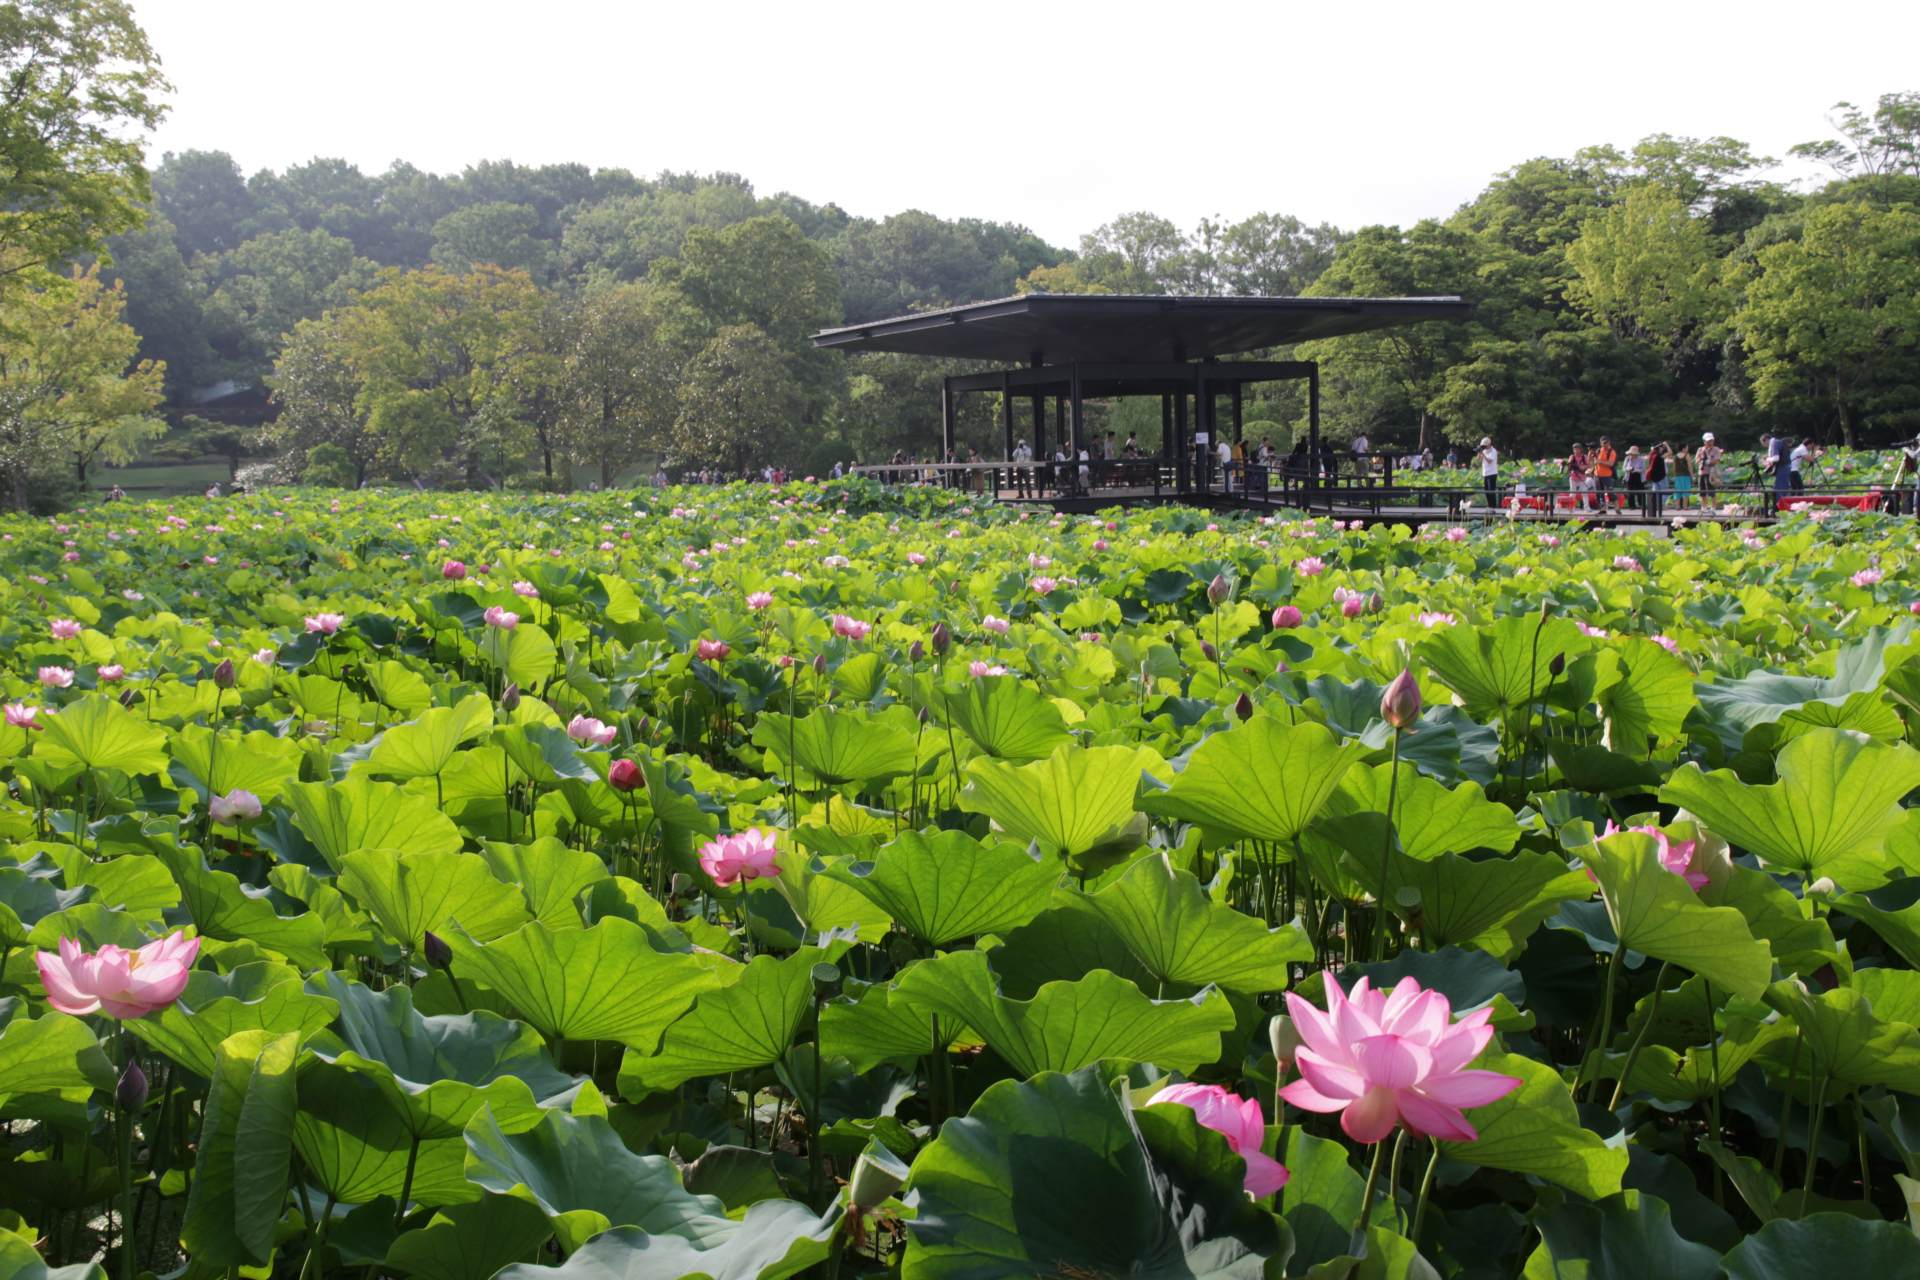 Lotus flowers bloom early in the morning, closing at noon. Visiting in the morning is recommended.